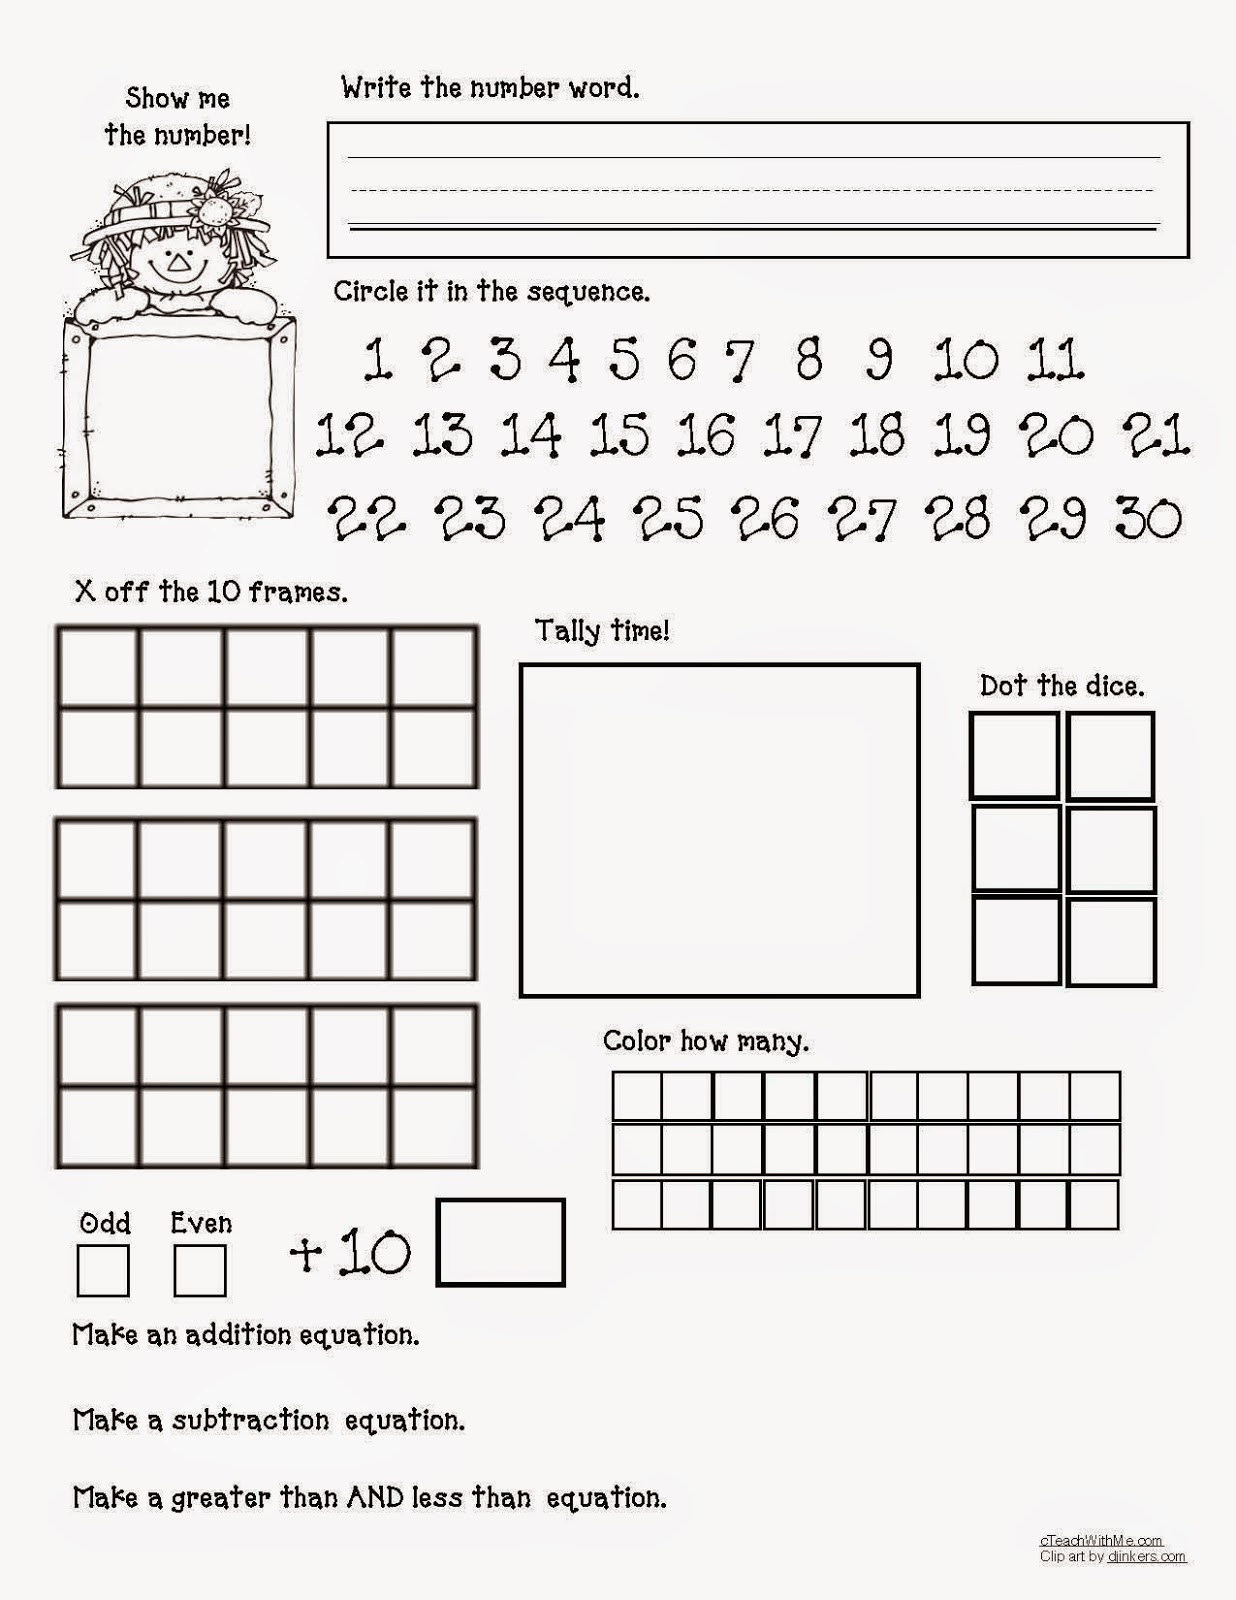 Summer Math Packets Rising 9th math worksheets for 4th grade ...